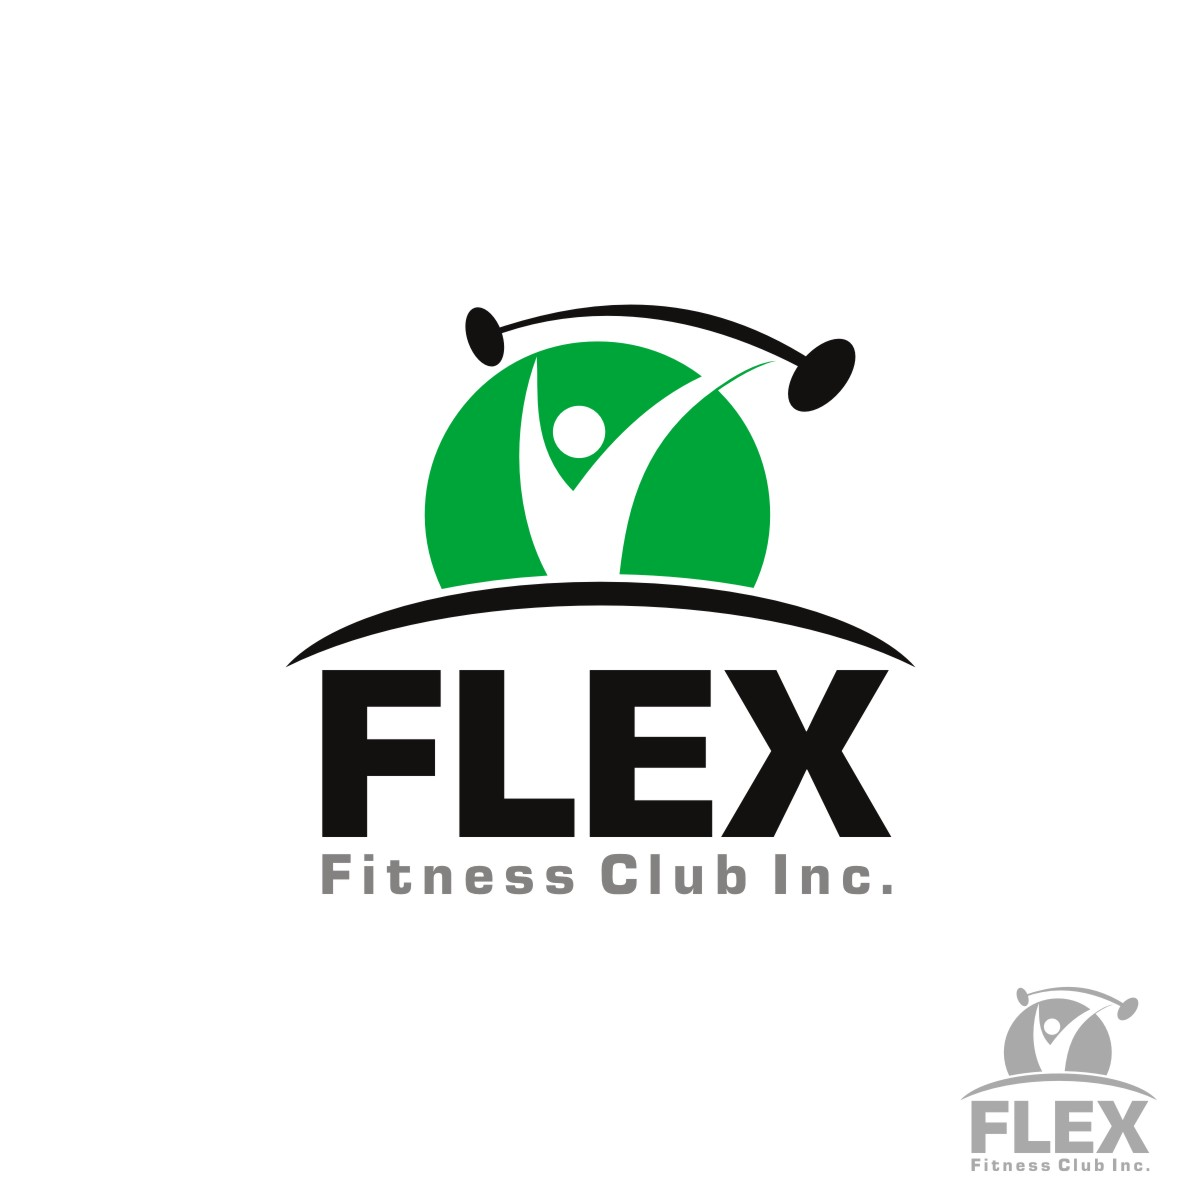 Logo Design by Upendra Sharma - Entry No. 62 in the Logo Design Contest New Logo Design for Flex Fitness Club Inc..